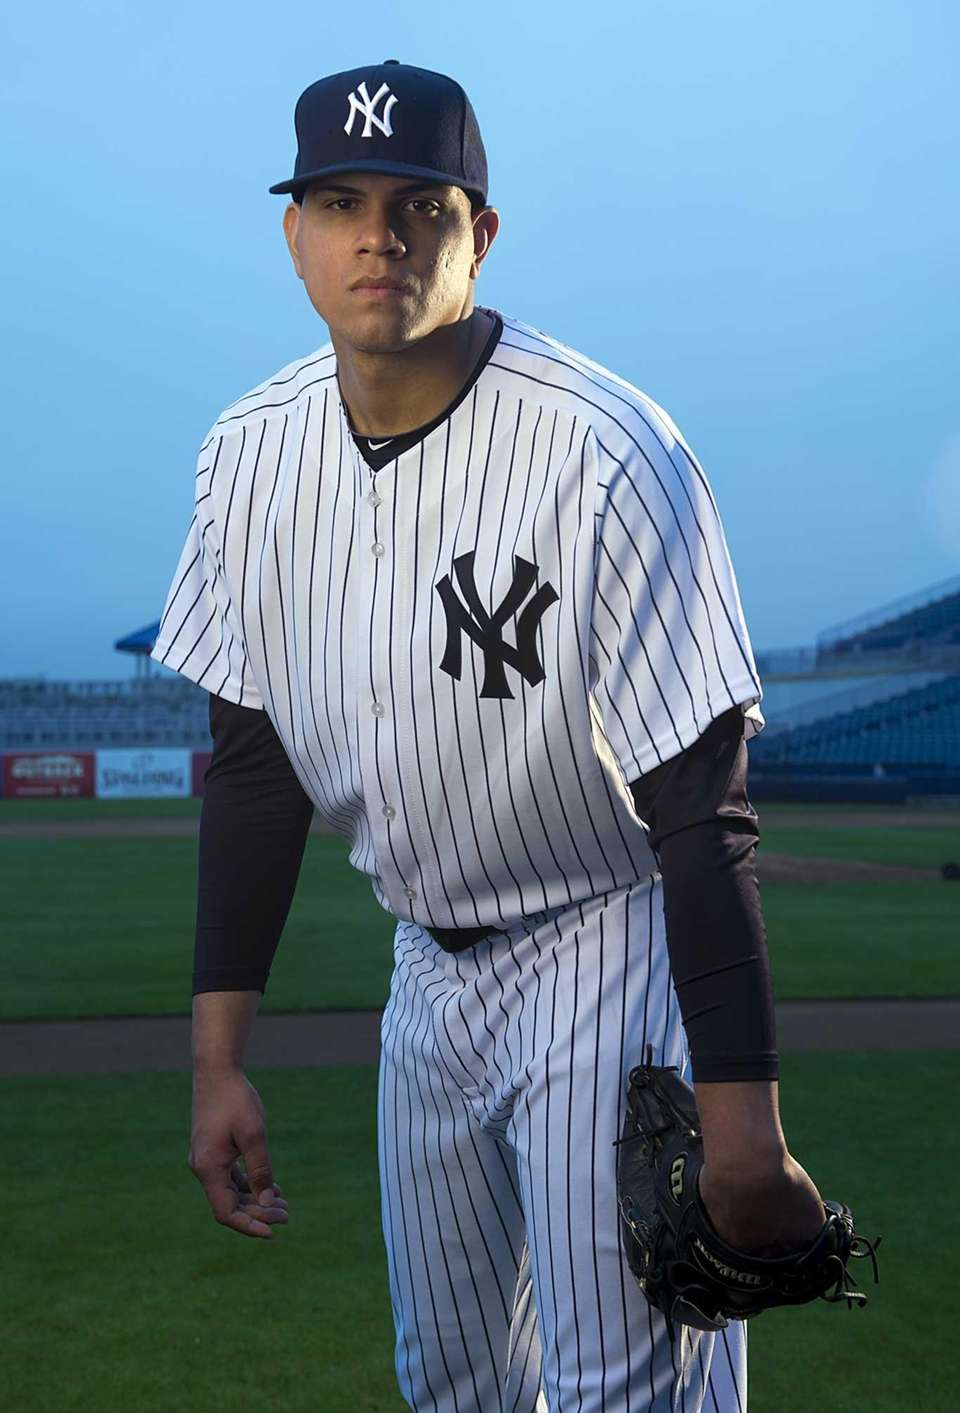 Betances was a top prospect coming out of